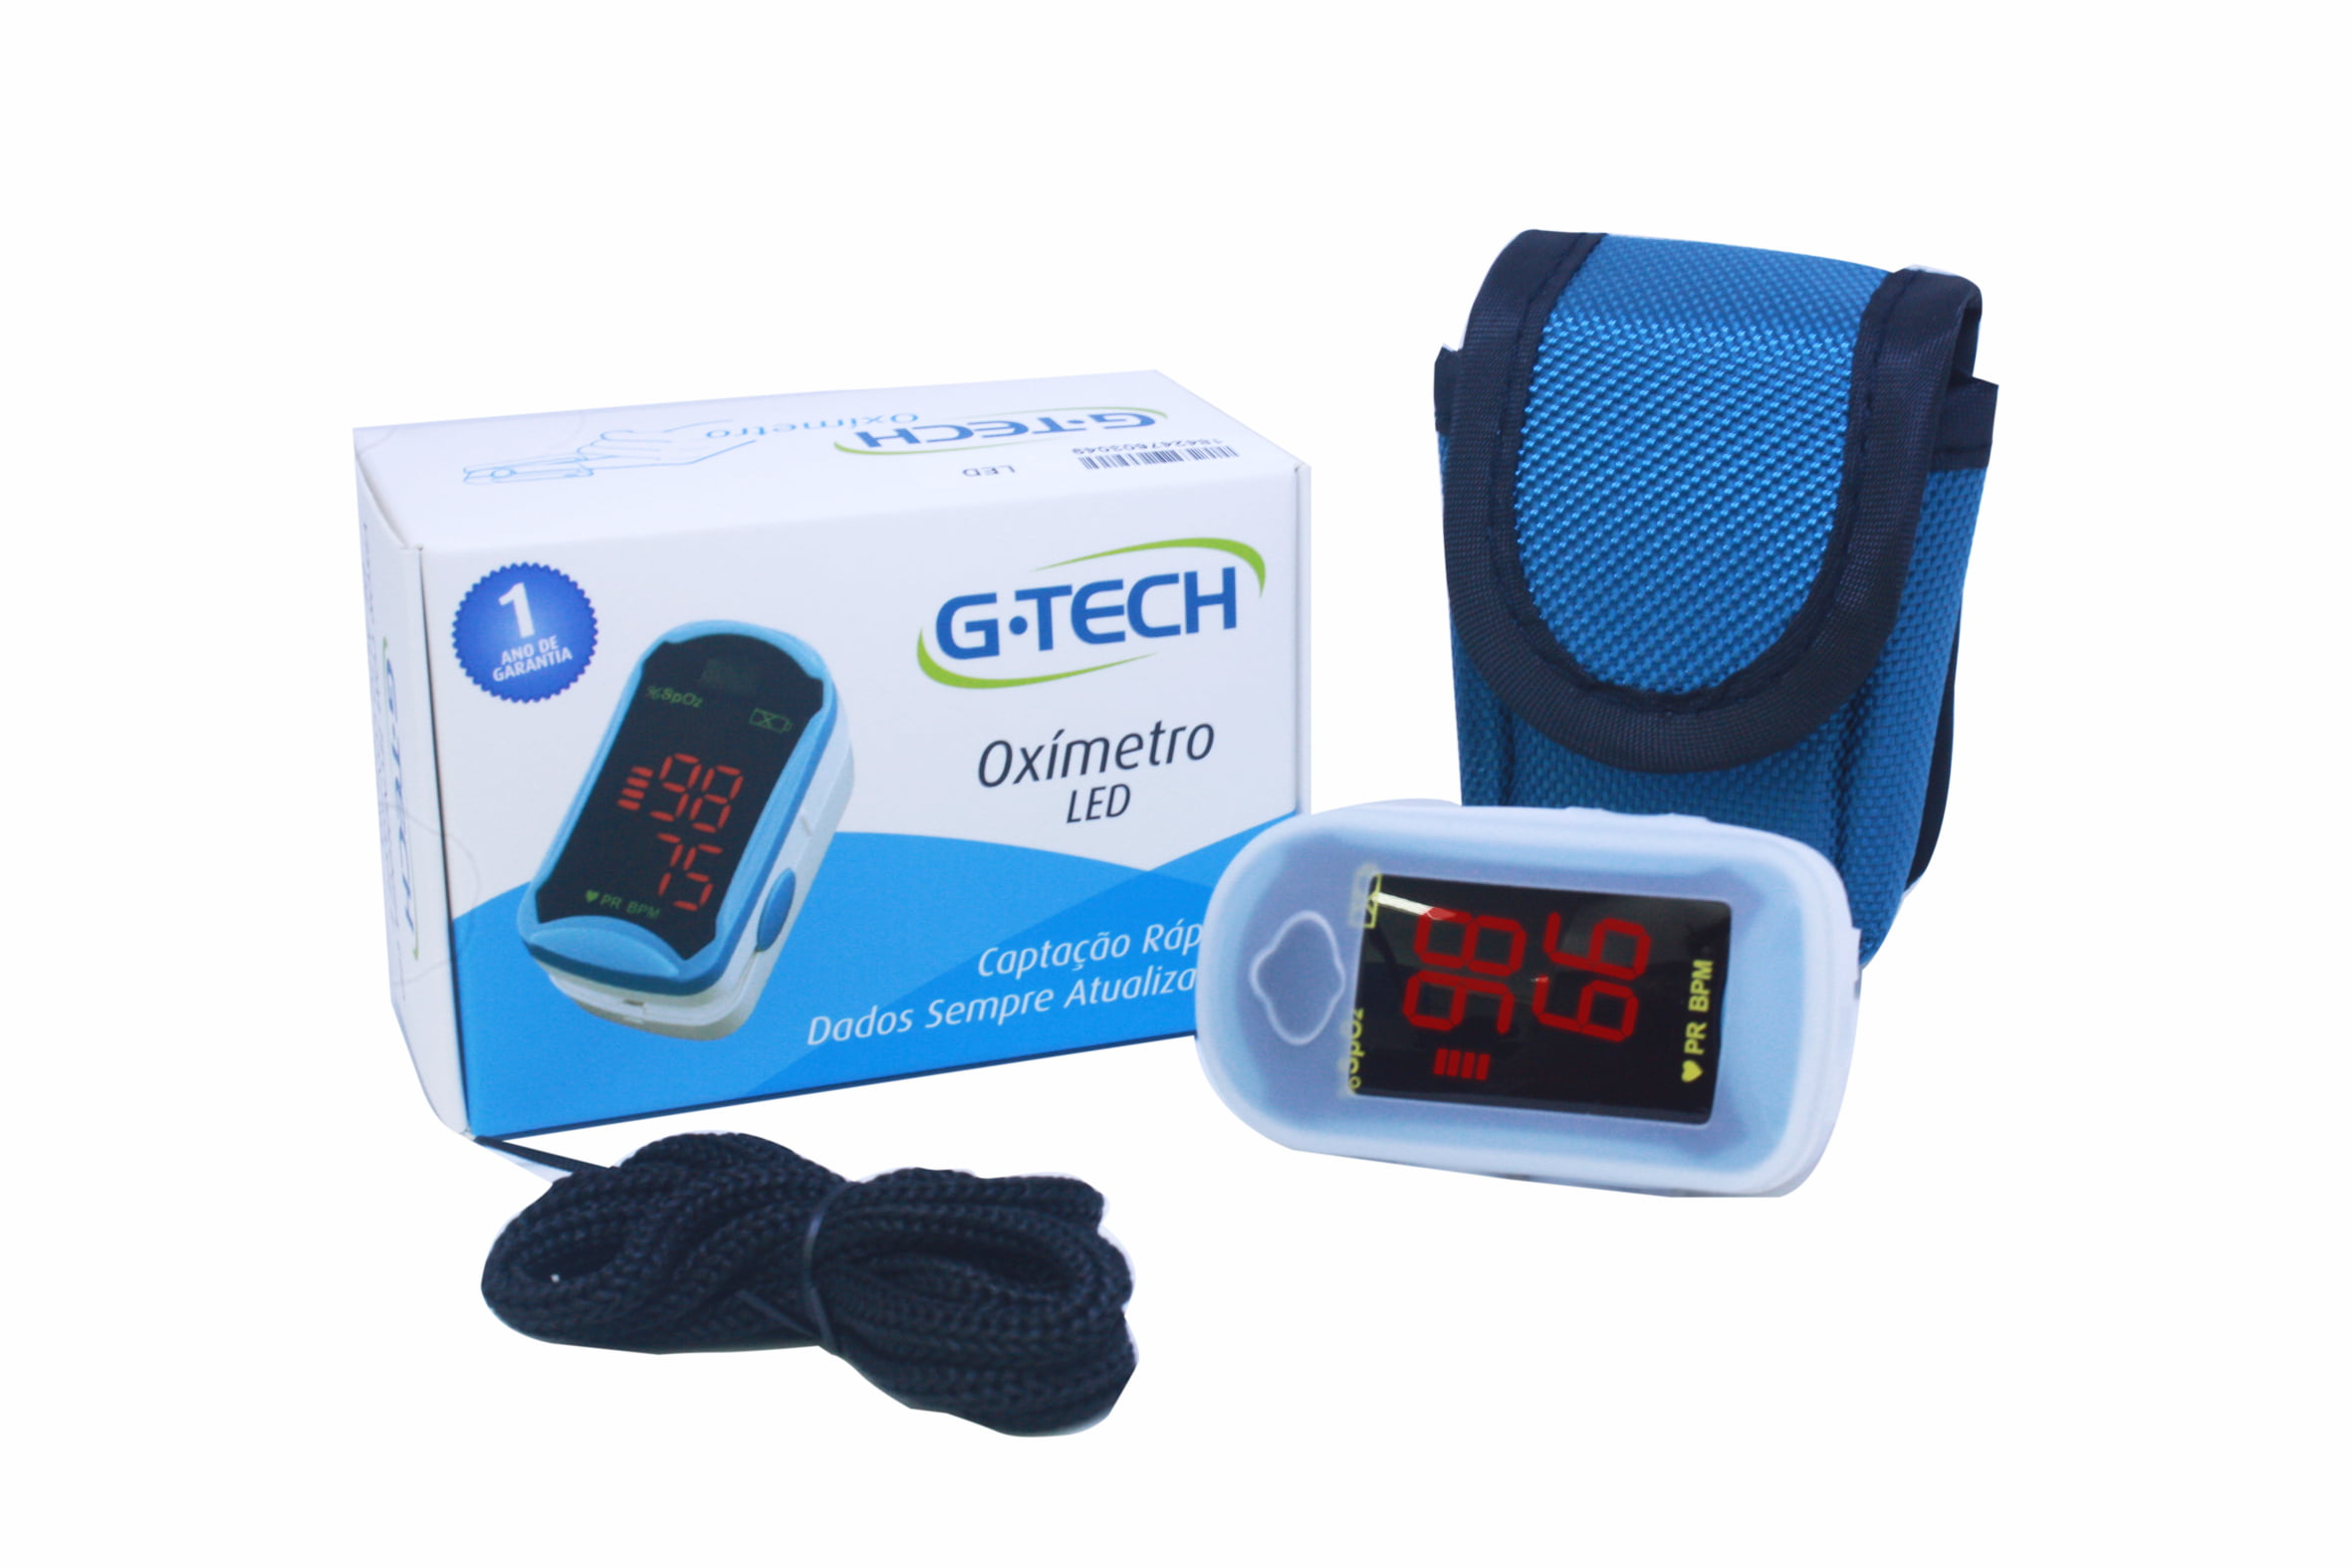 Oxímetro Digital Portátil de Dedo Modelo LED - G-tech